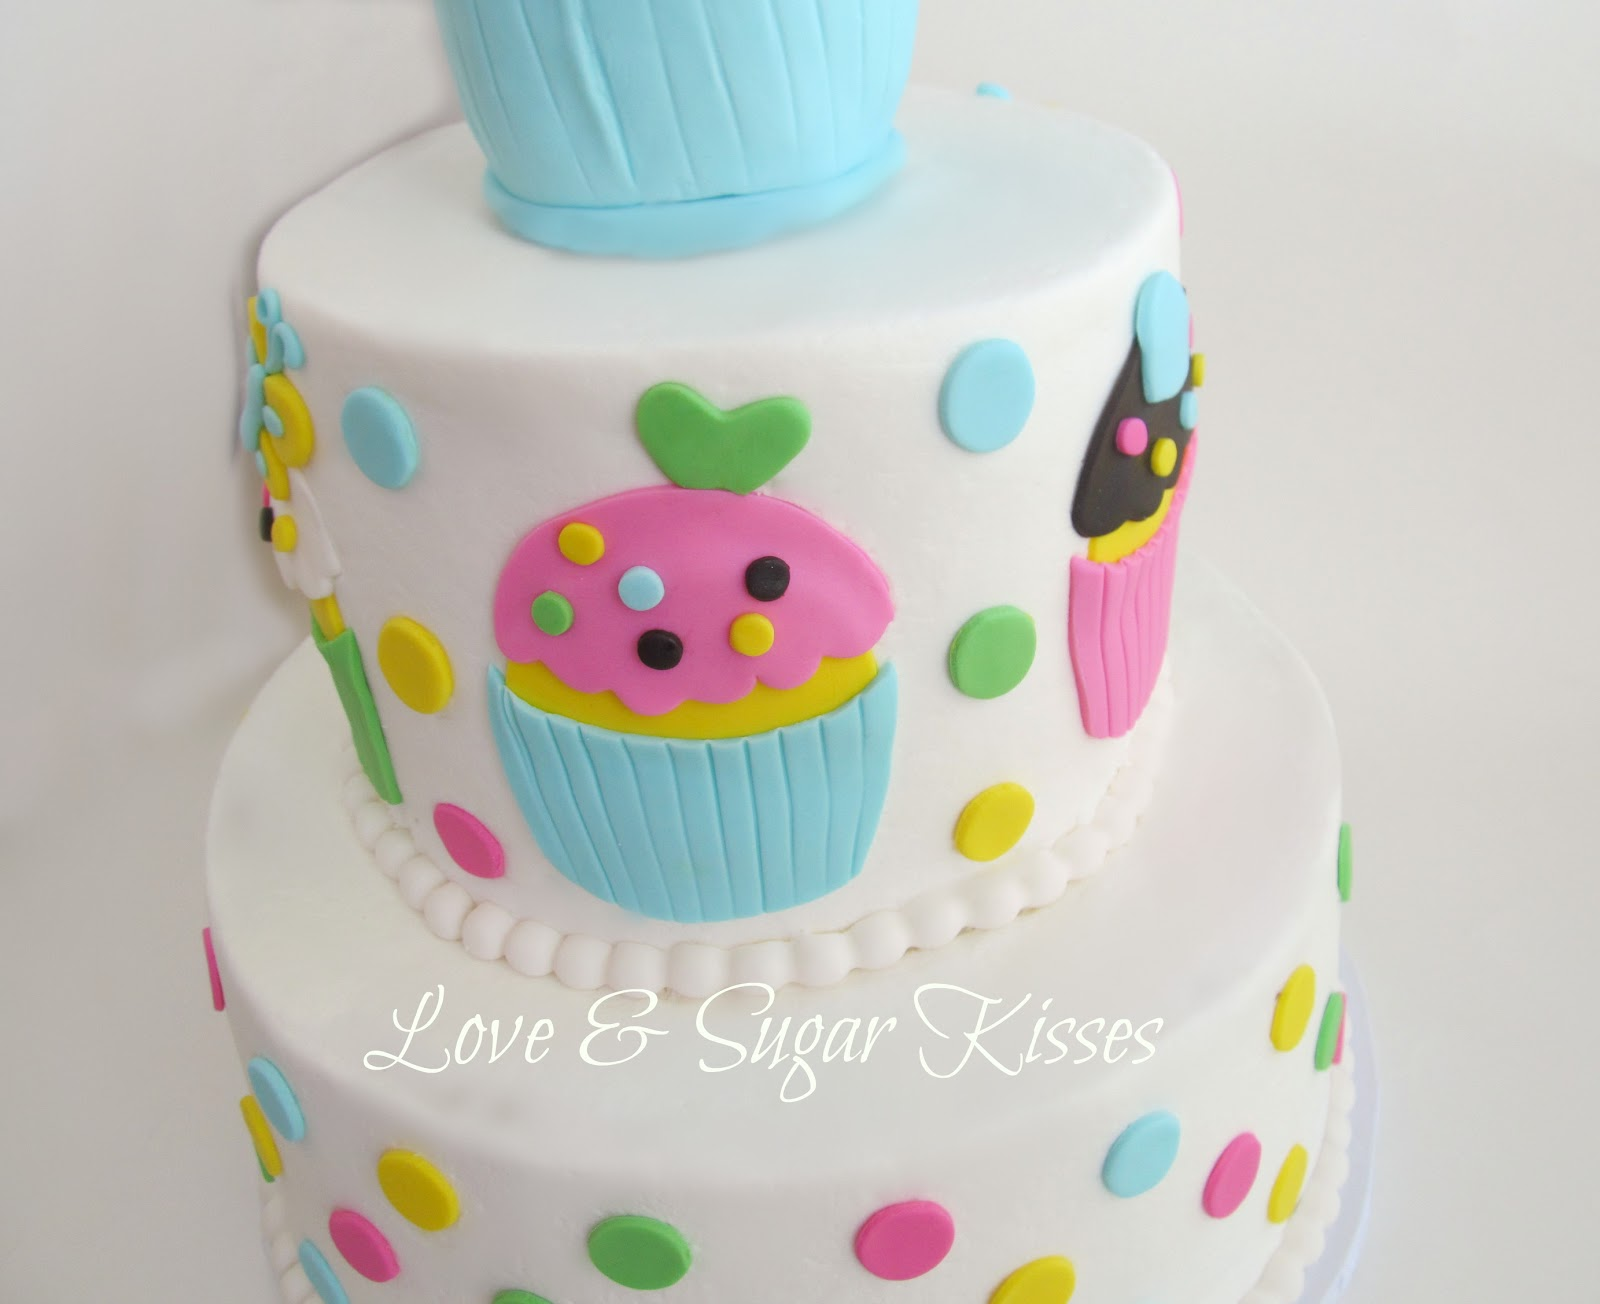 Love & Sugar Kisses: Cupcake themed birthday cake